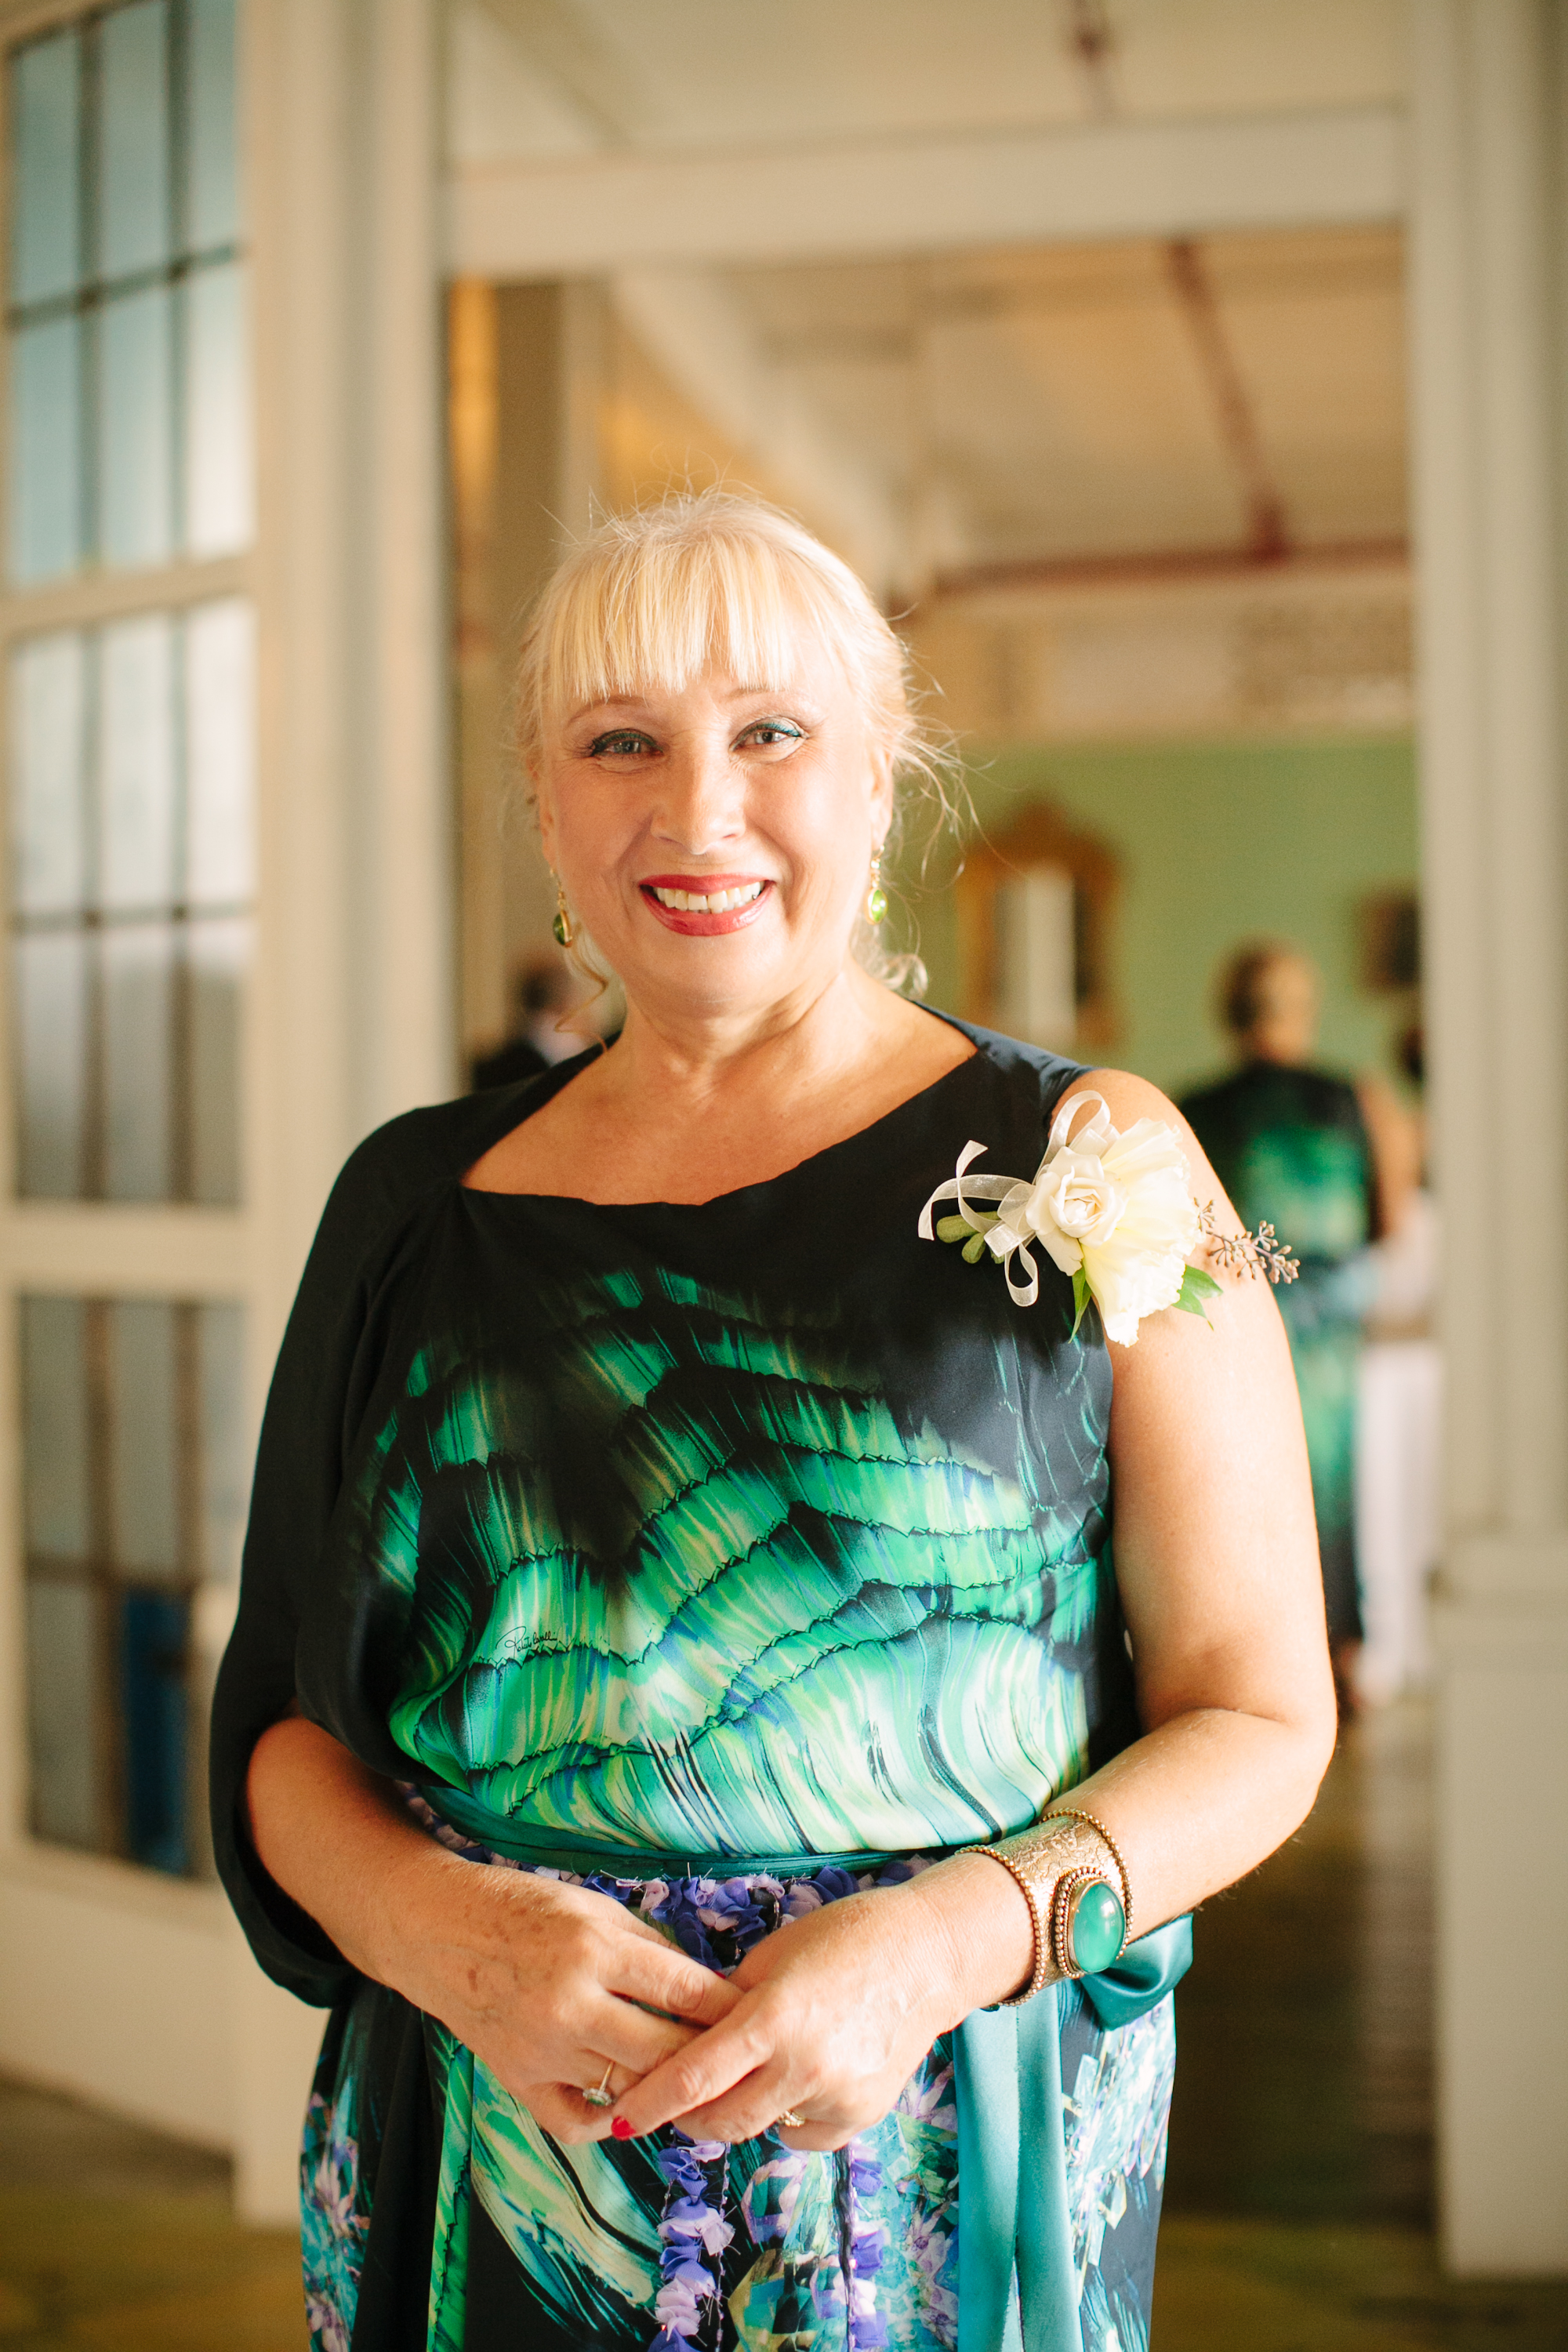 Wedding Guest Wearing a Green and Black Dress